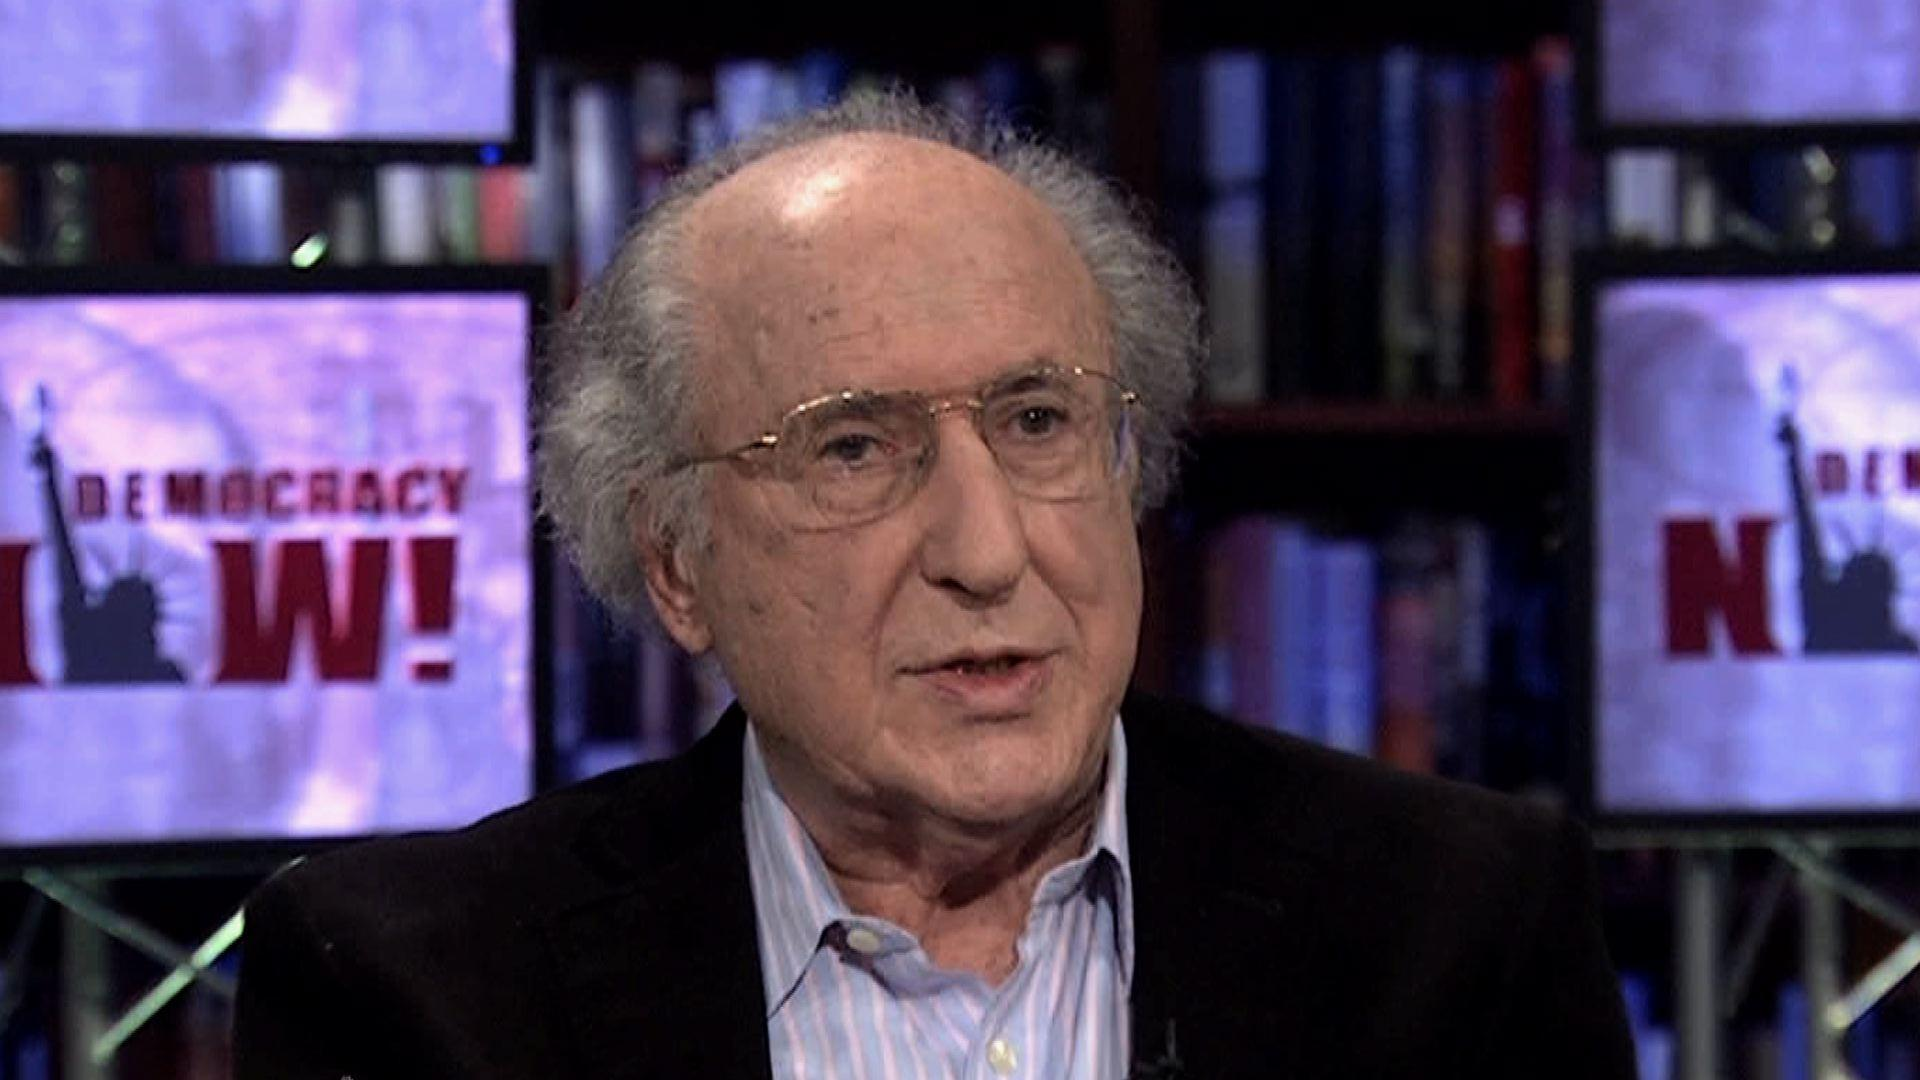 "RT @democracynow: Rabbi Henry Siegman, Leading Voice of U.S. Jewry, on #Gaza: ""A Slaughter of Innocents"" http://t.co/xWP3wCIVS7 #Israel htt…"